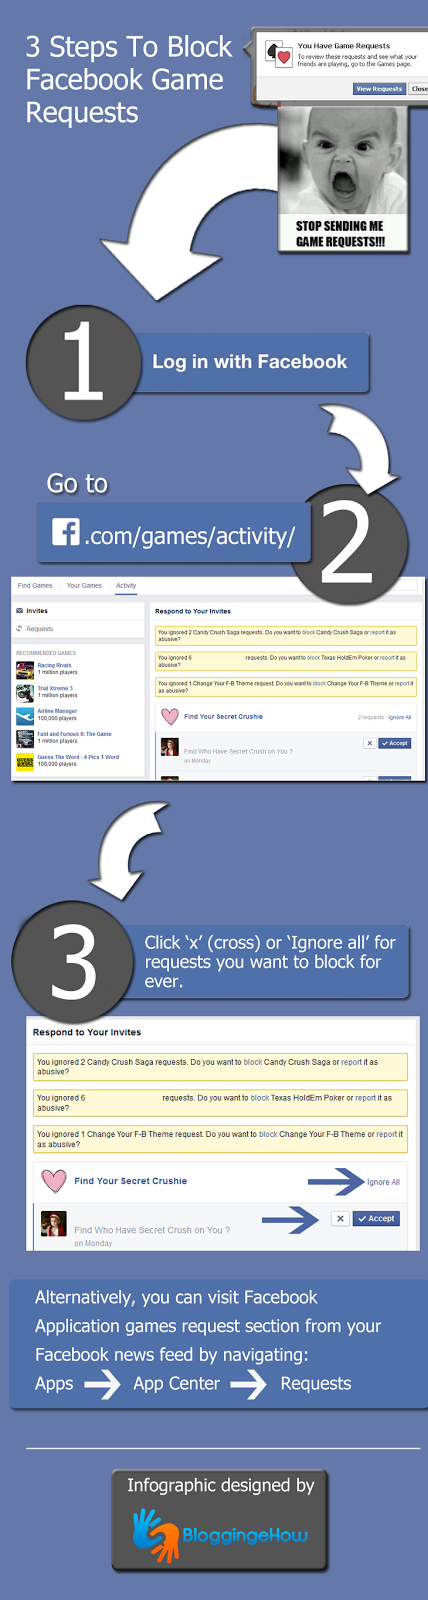 3 Steps To Block Stupid Facebook Game Requests [Infographic]